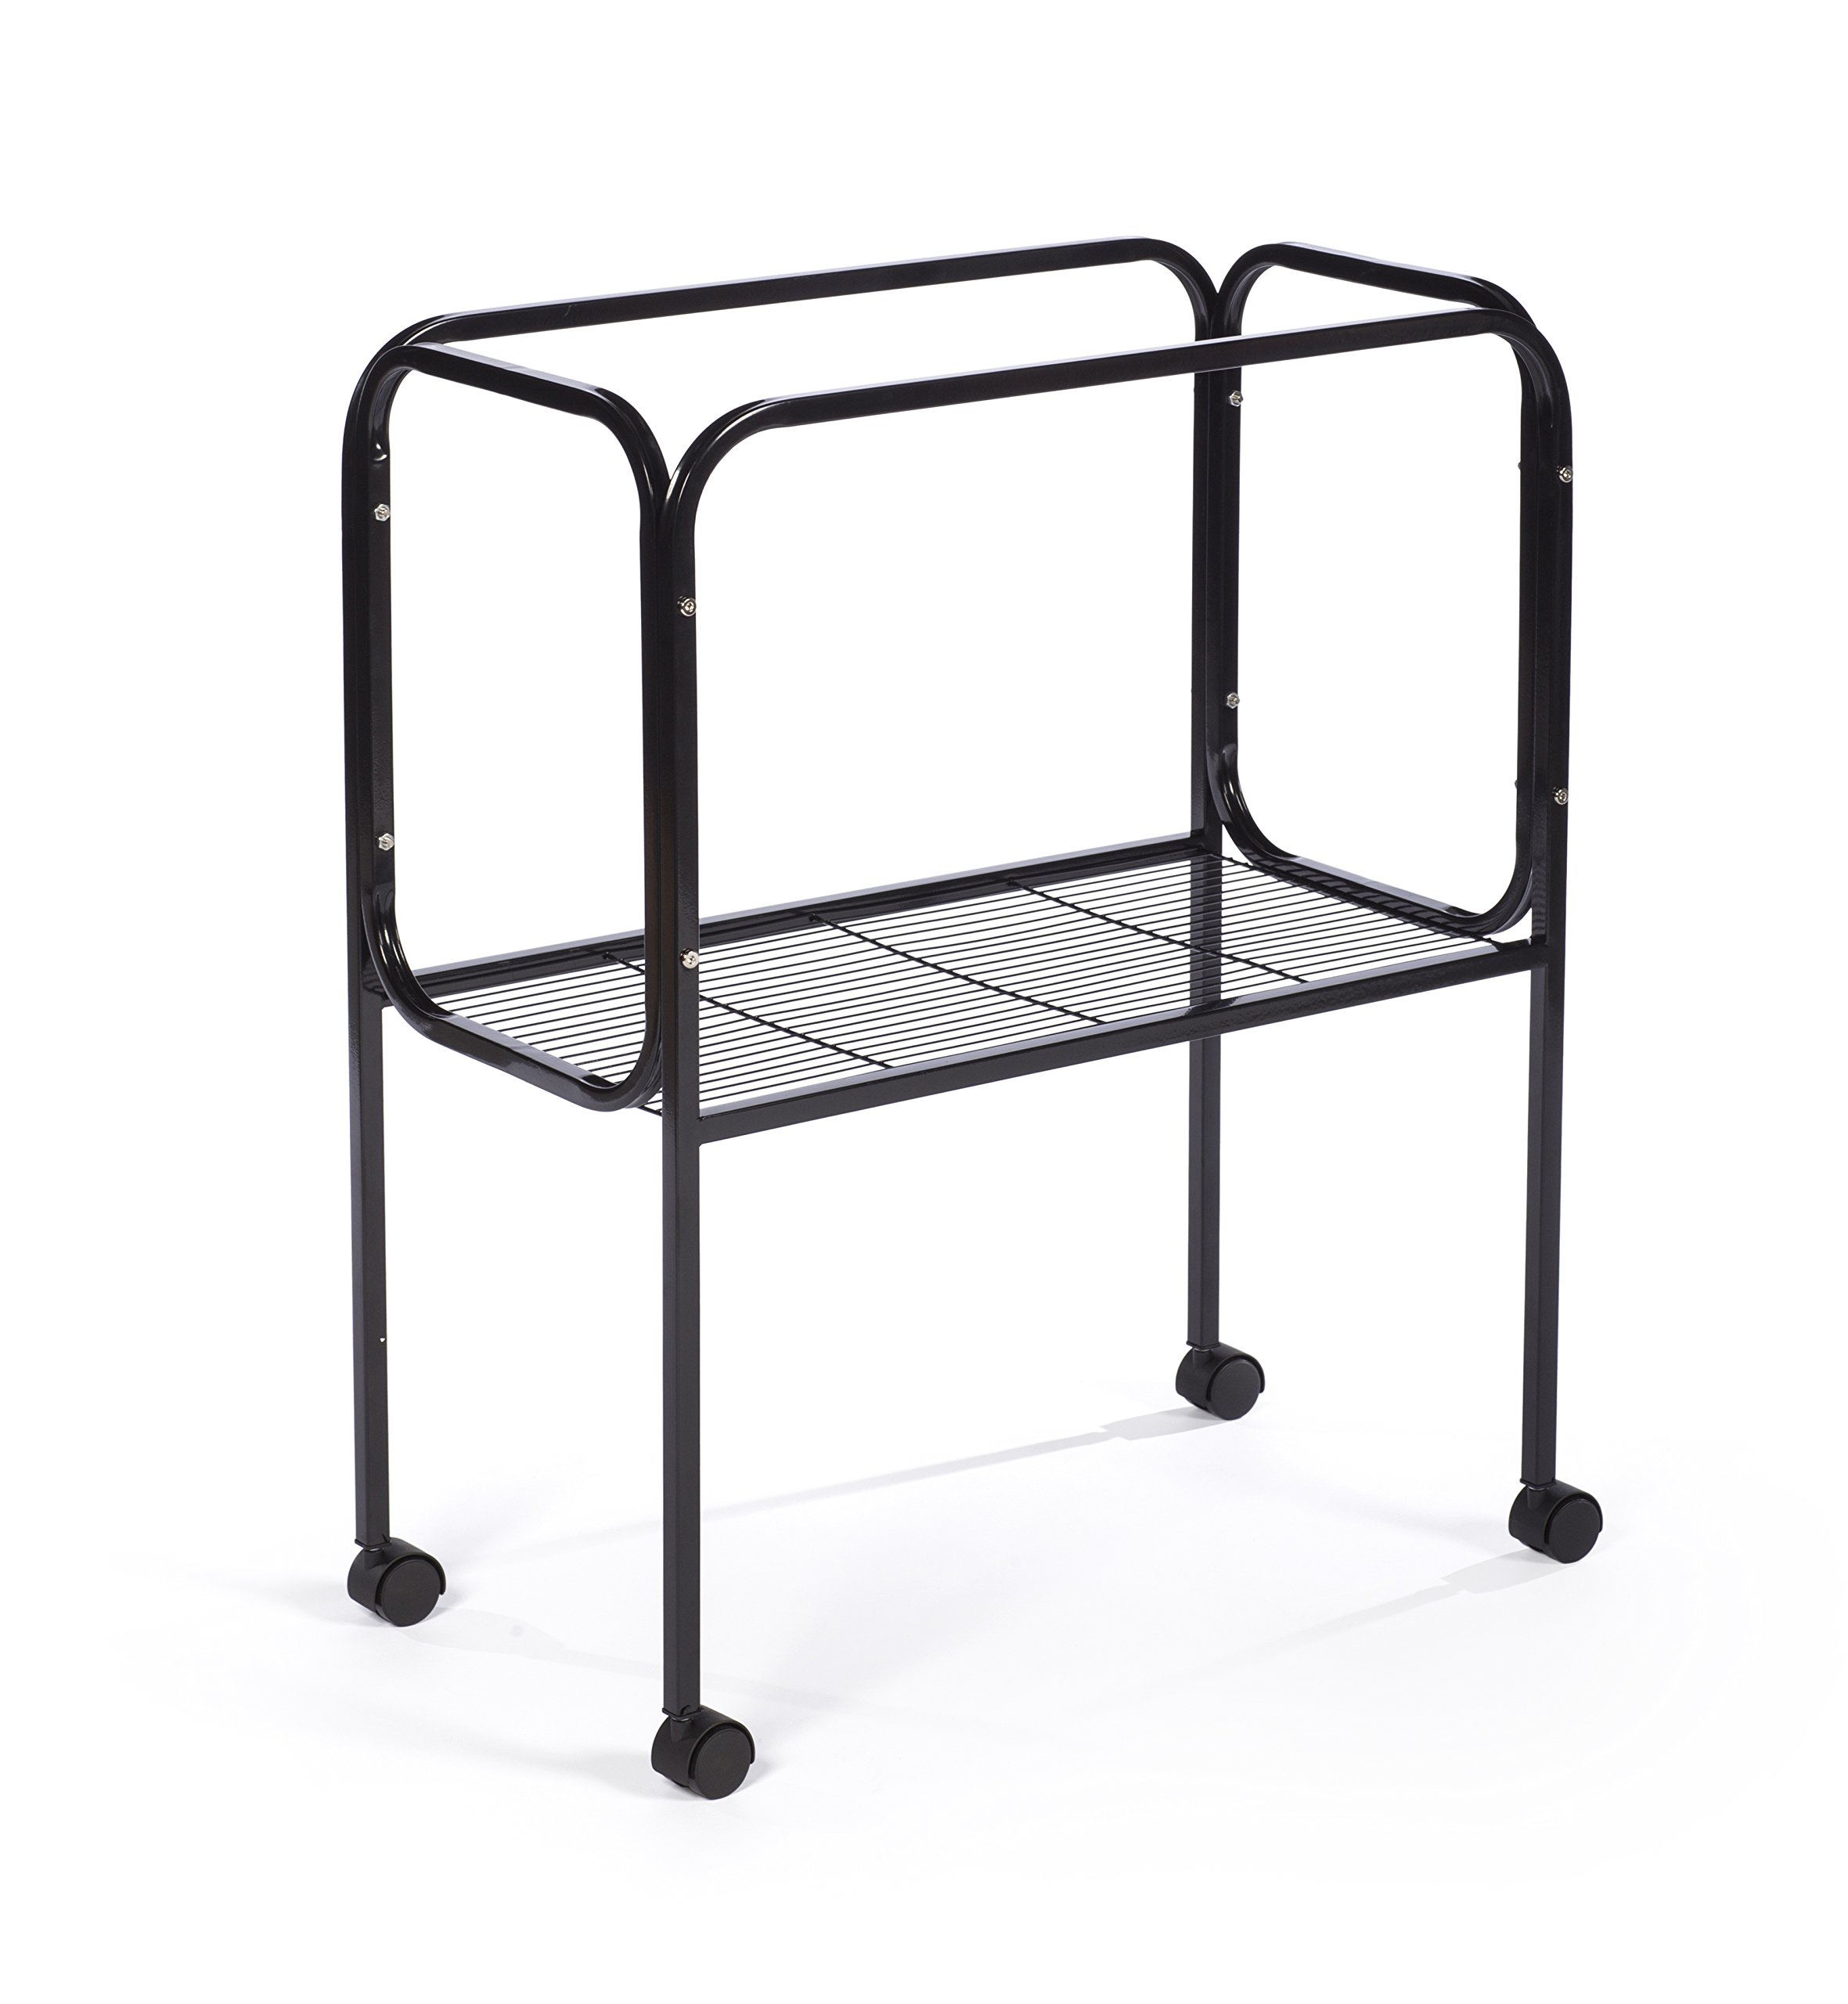 Prevue Pet Products 446 Bird Cage Stand for 26'' x 14'' Base Flight Cages, Black